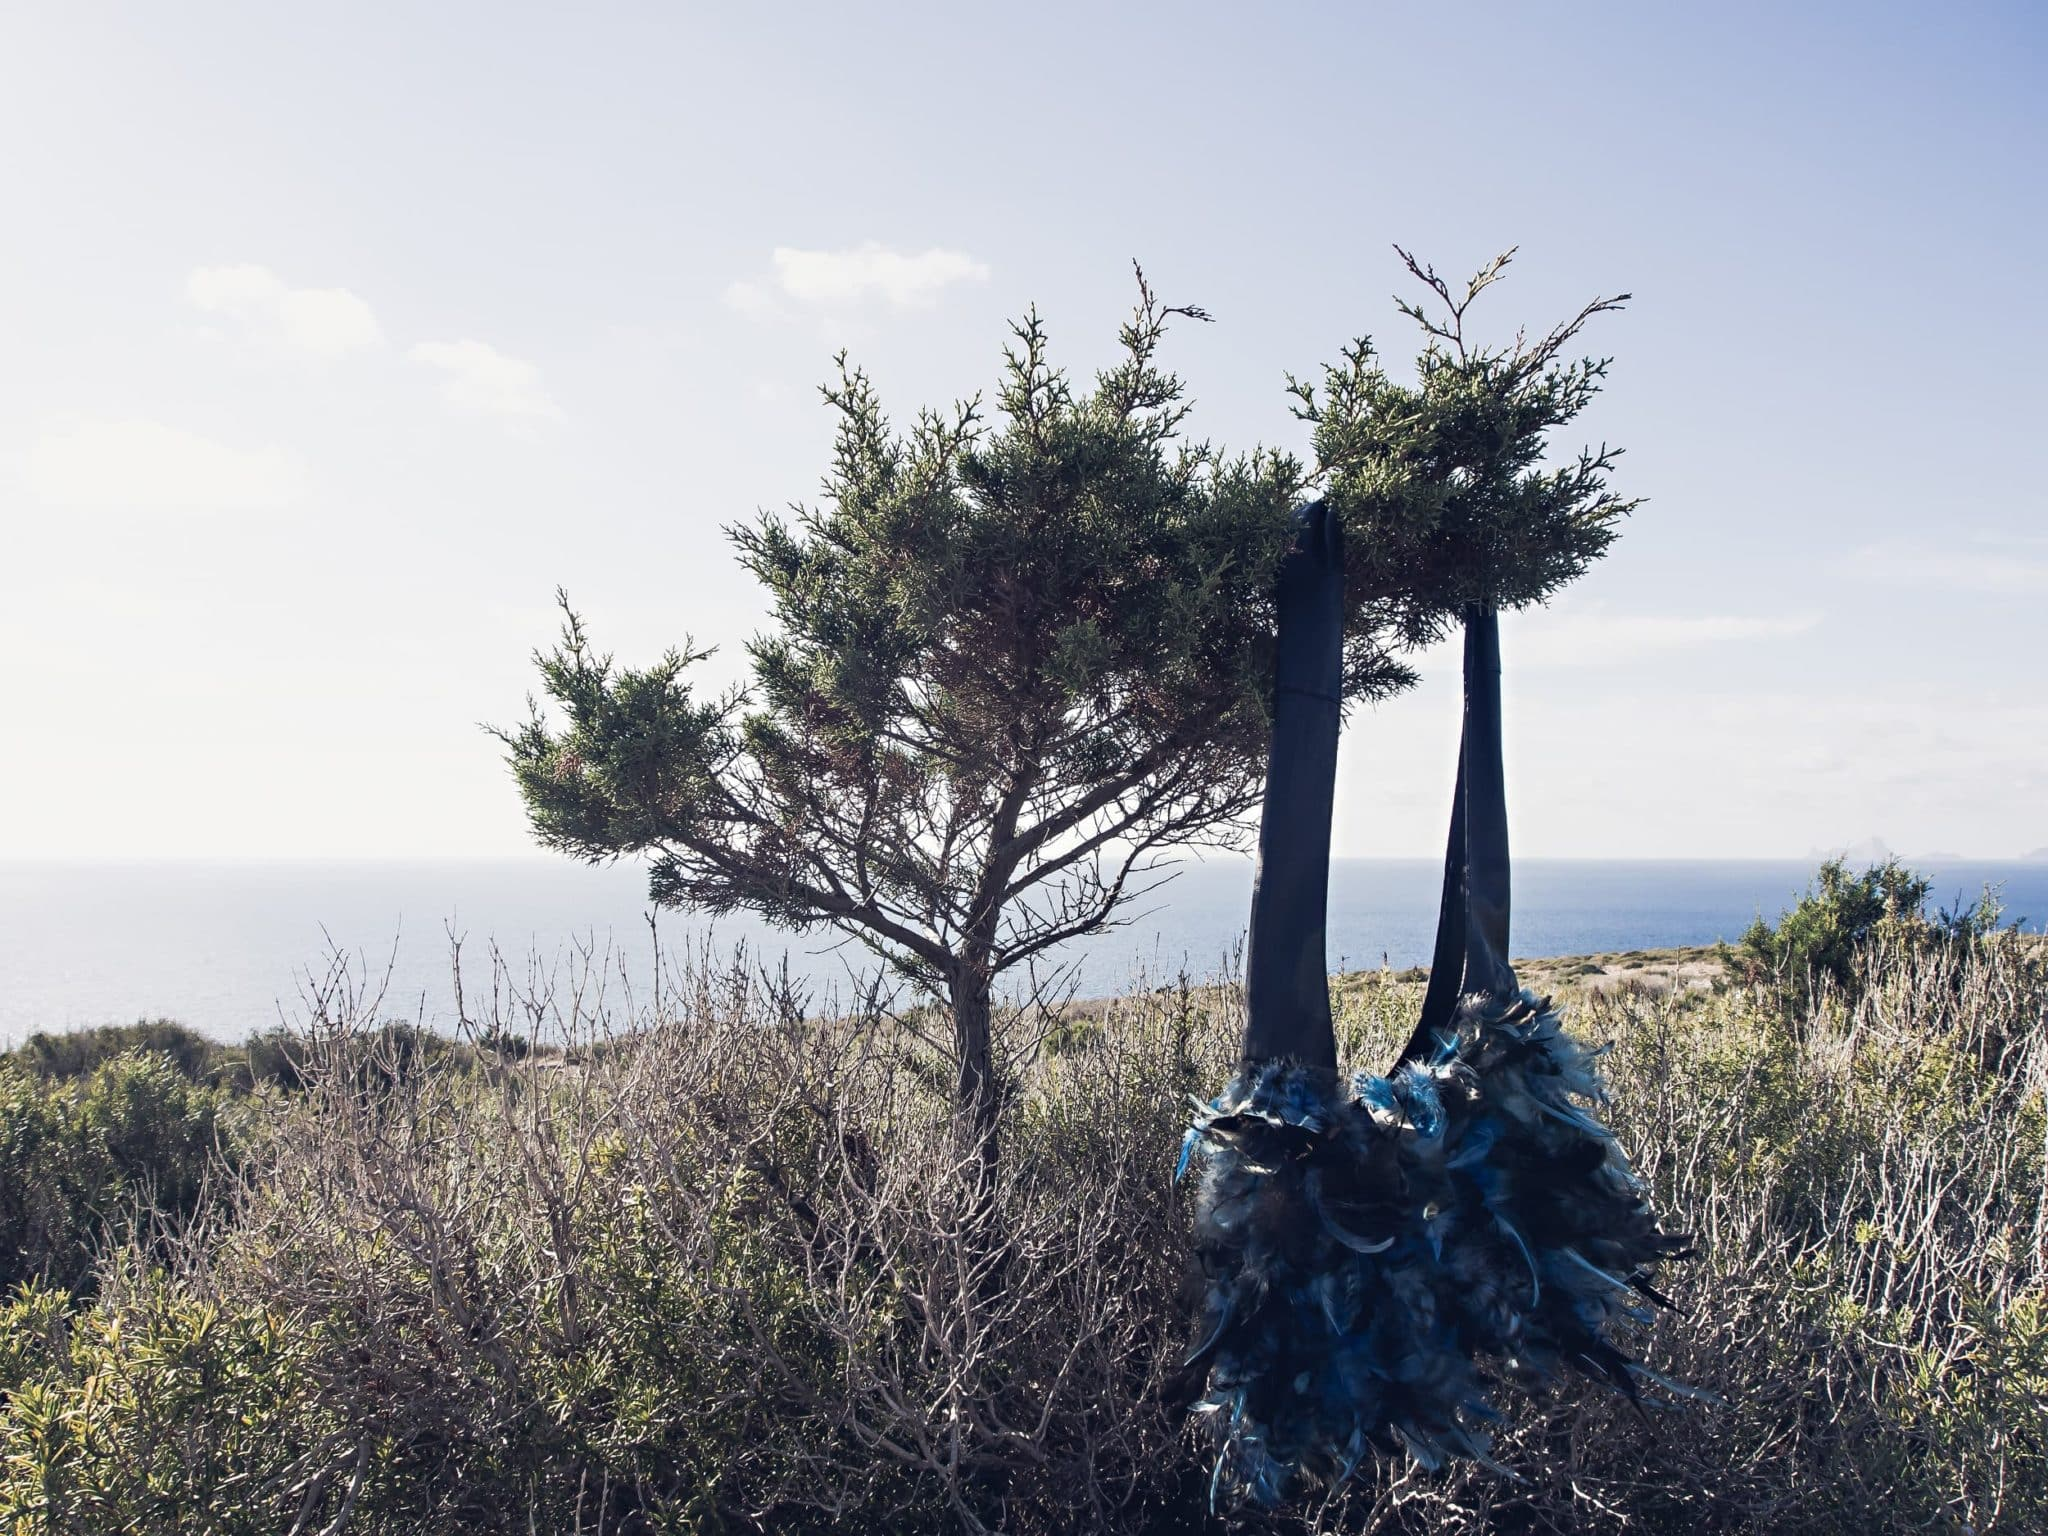 LiebJu Bags a travel love story - photographed by Holger Altgeld